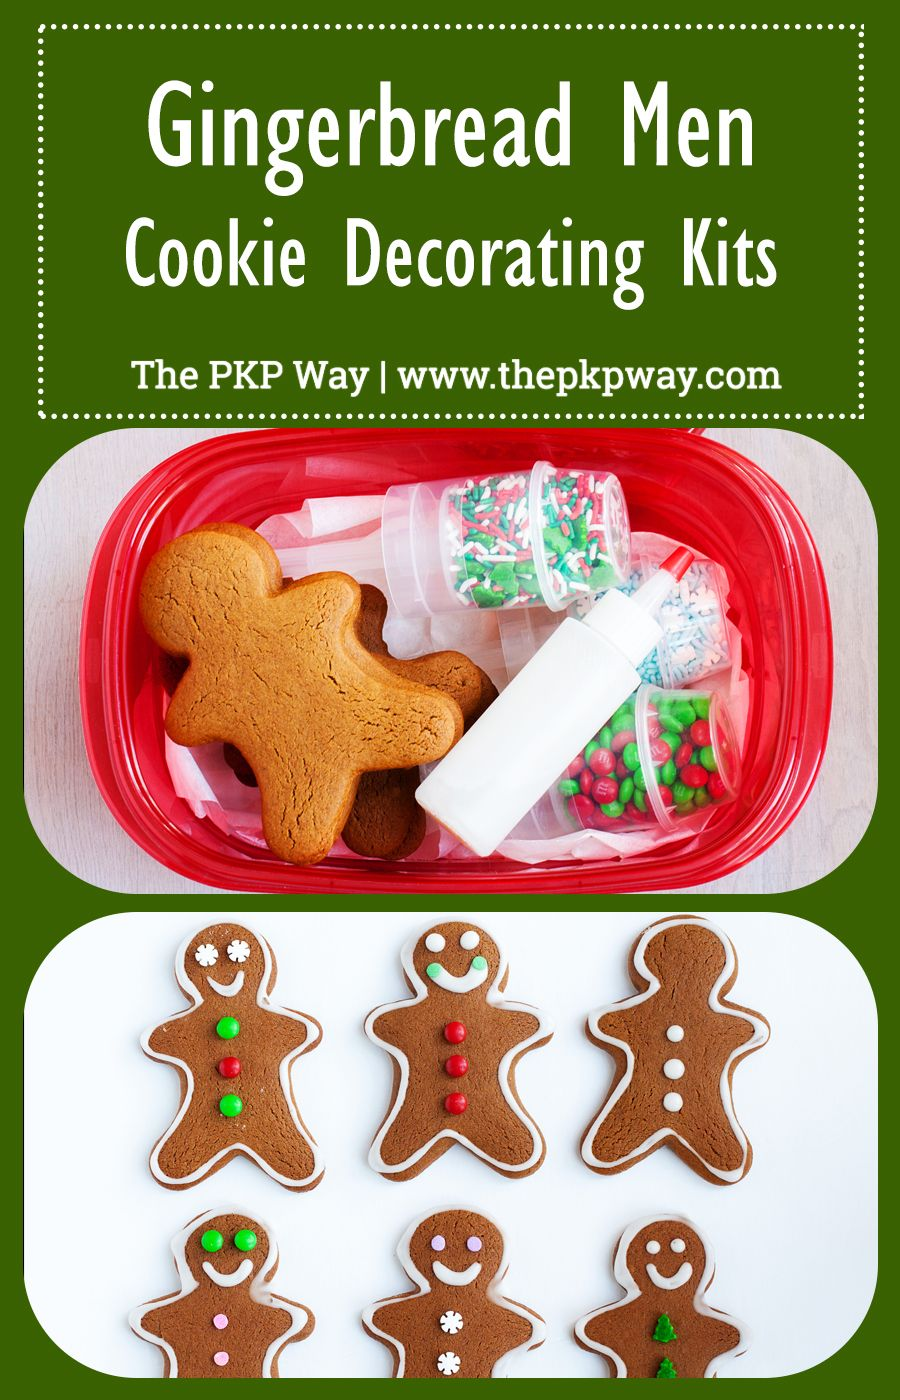 Gingerbread Men Cookie Decorating Kits make cute packages